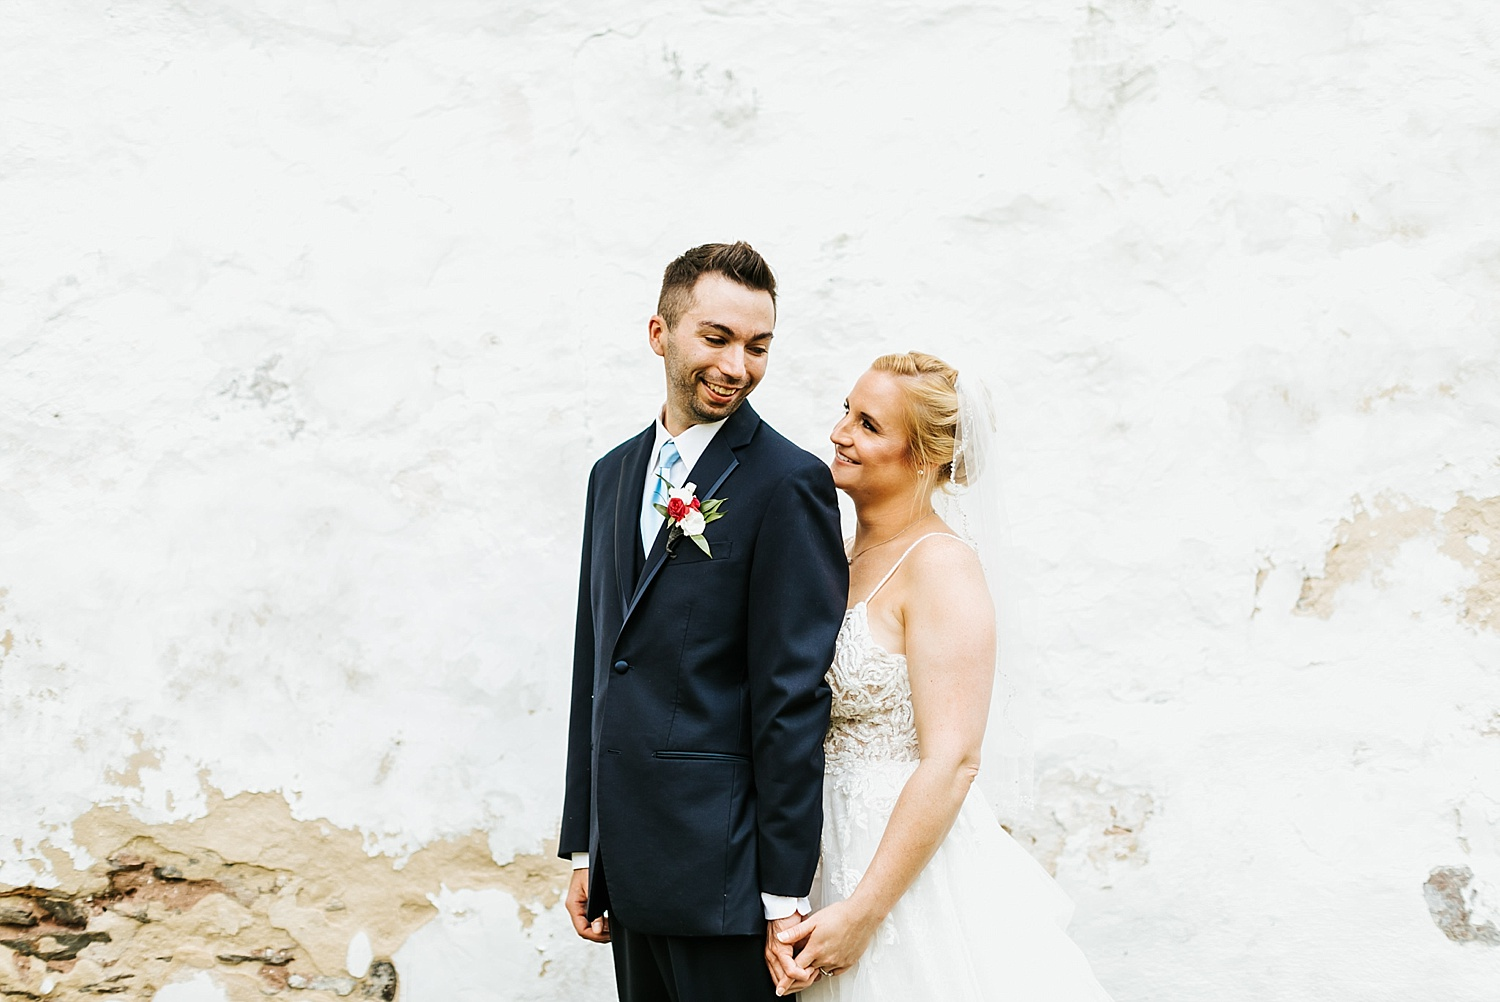 Groom looking over shoulder at his bride, holding hands on front of a white concrete wall.